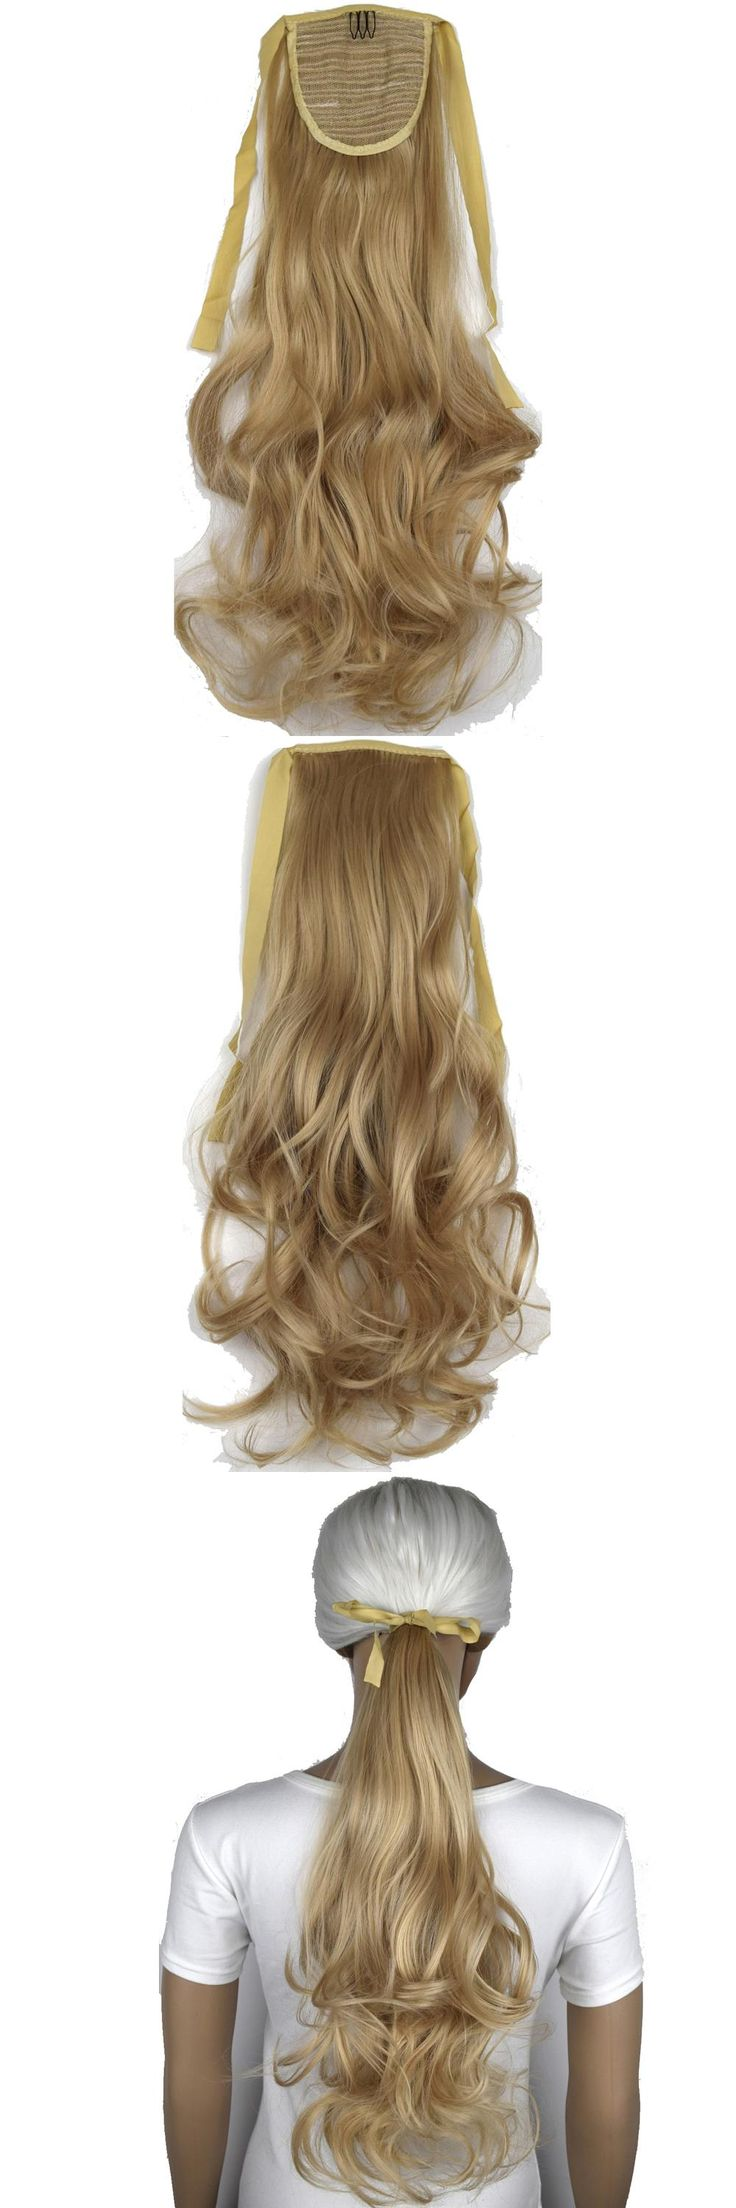 "TOPREETY Heat Resistant B5 Synthetic Hair Fiber 18"" 45cm Wavy Ribbon Ponytail Hair Extensions 50 Colors Available"